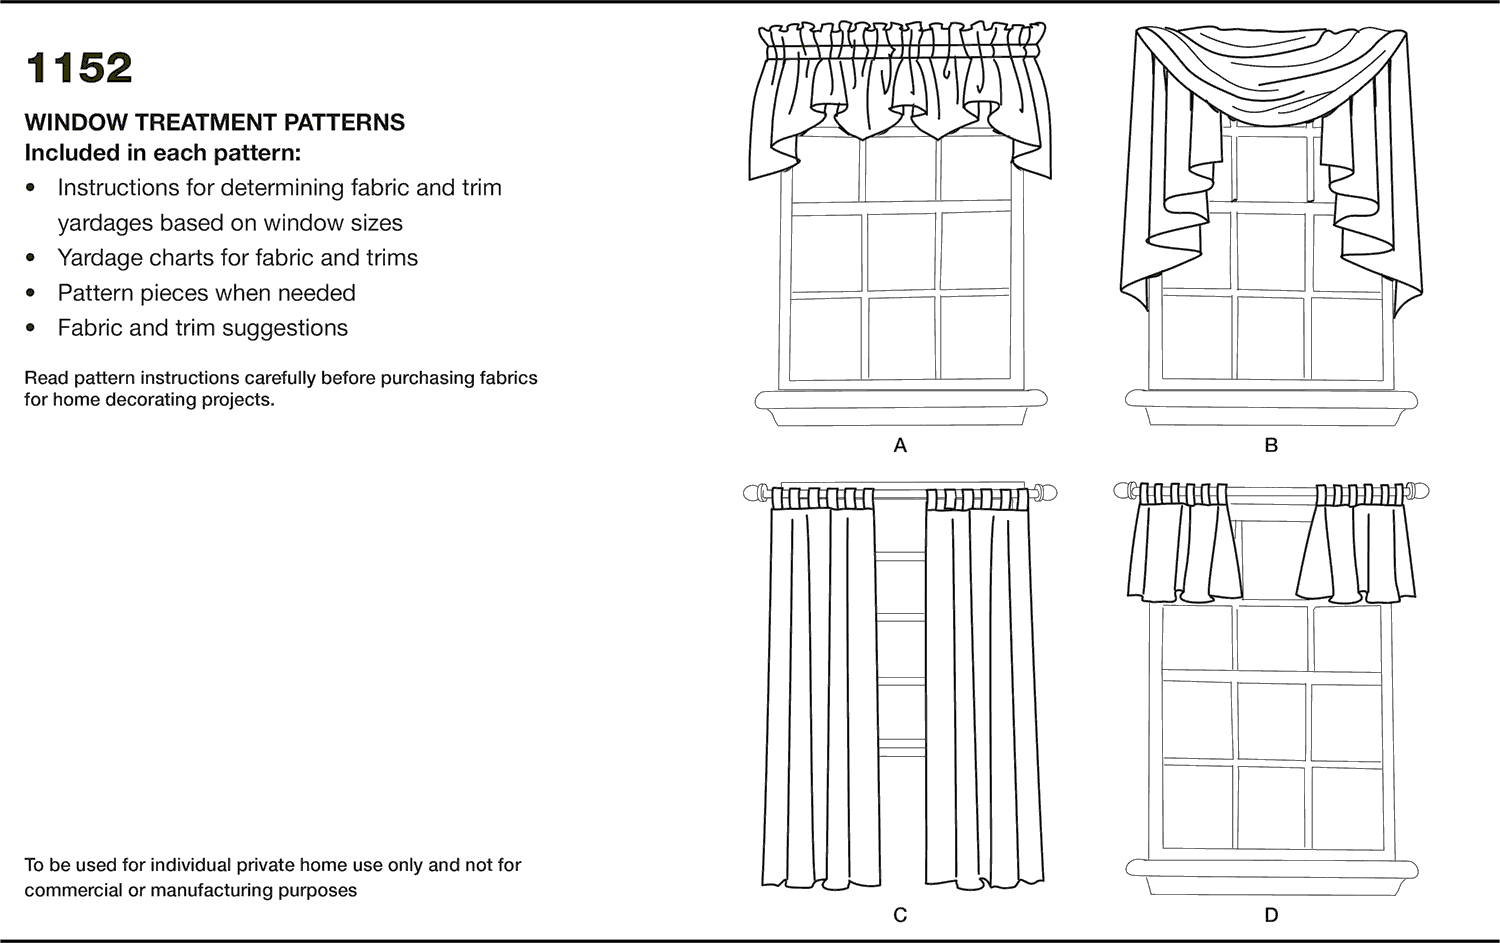 Simplicity Pattern 1152 Window Treatments Fabric Quantity Requirements From Patternsandplains.com